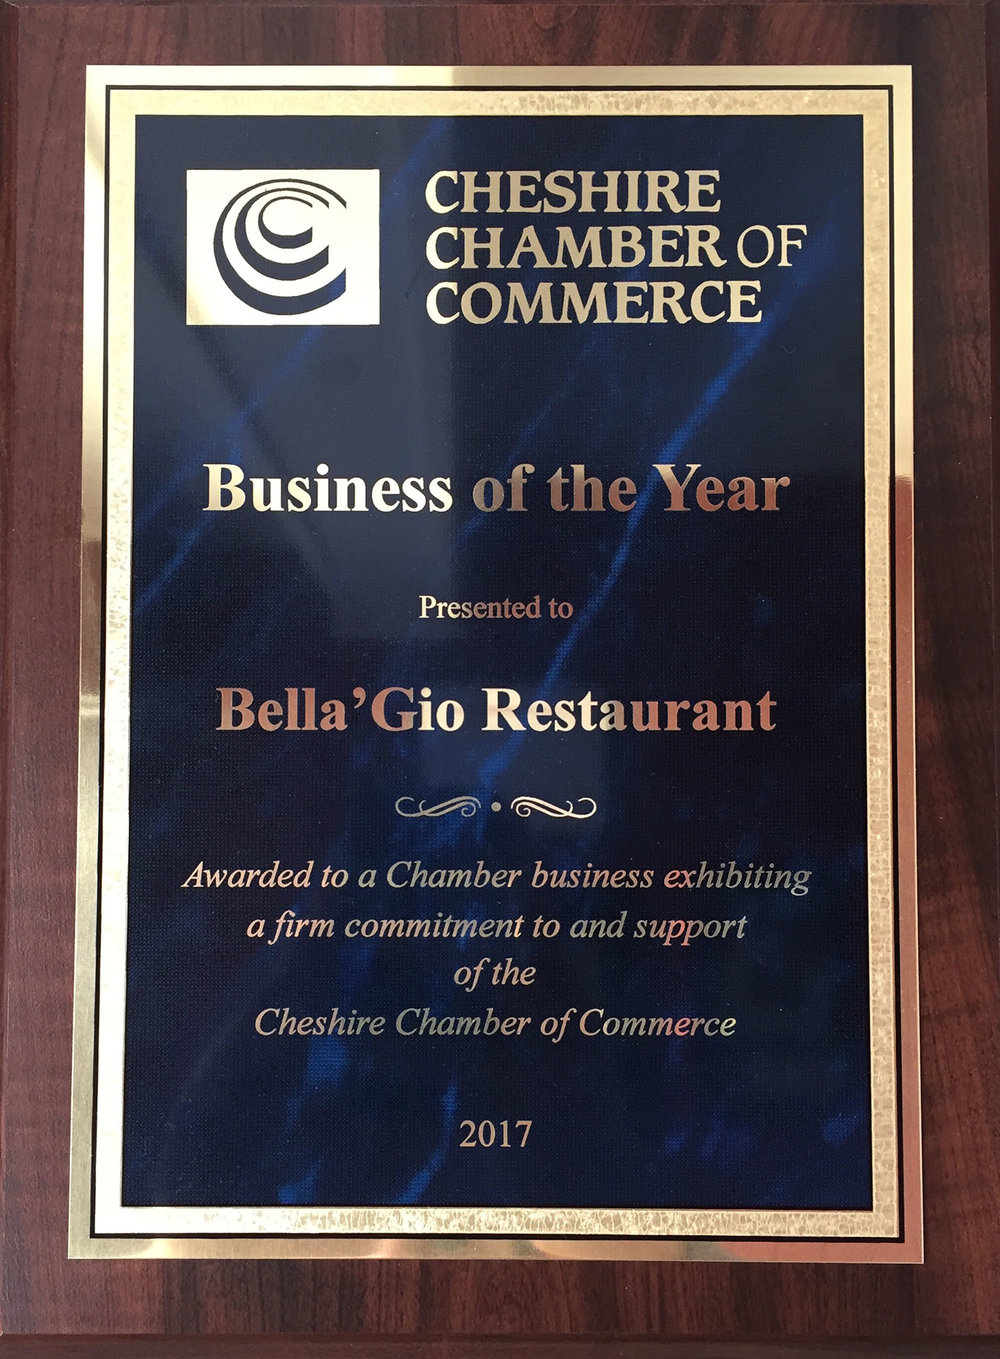 bellagio-business-of-the year.jpg